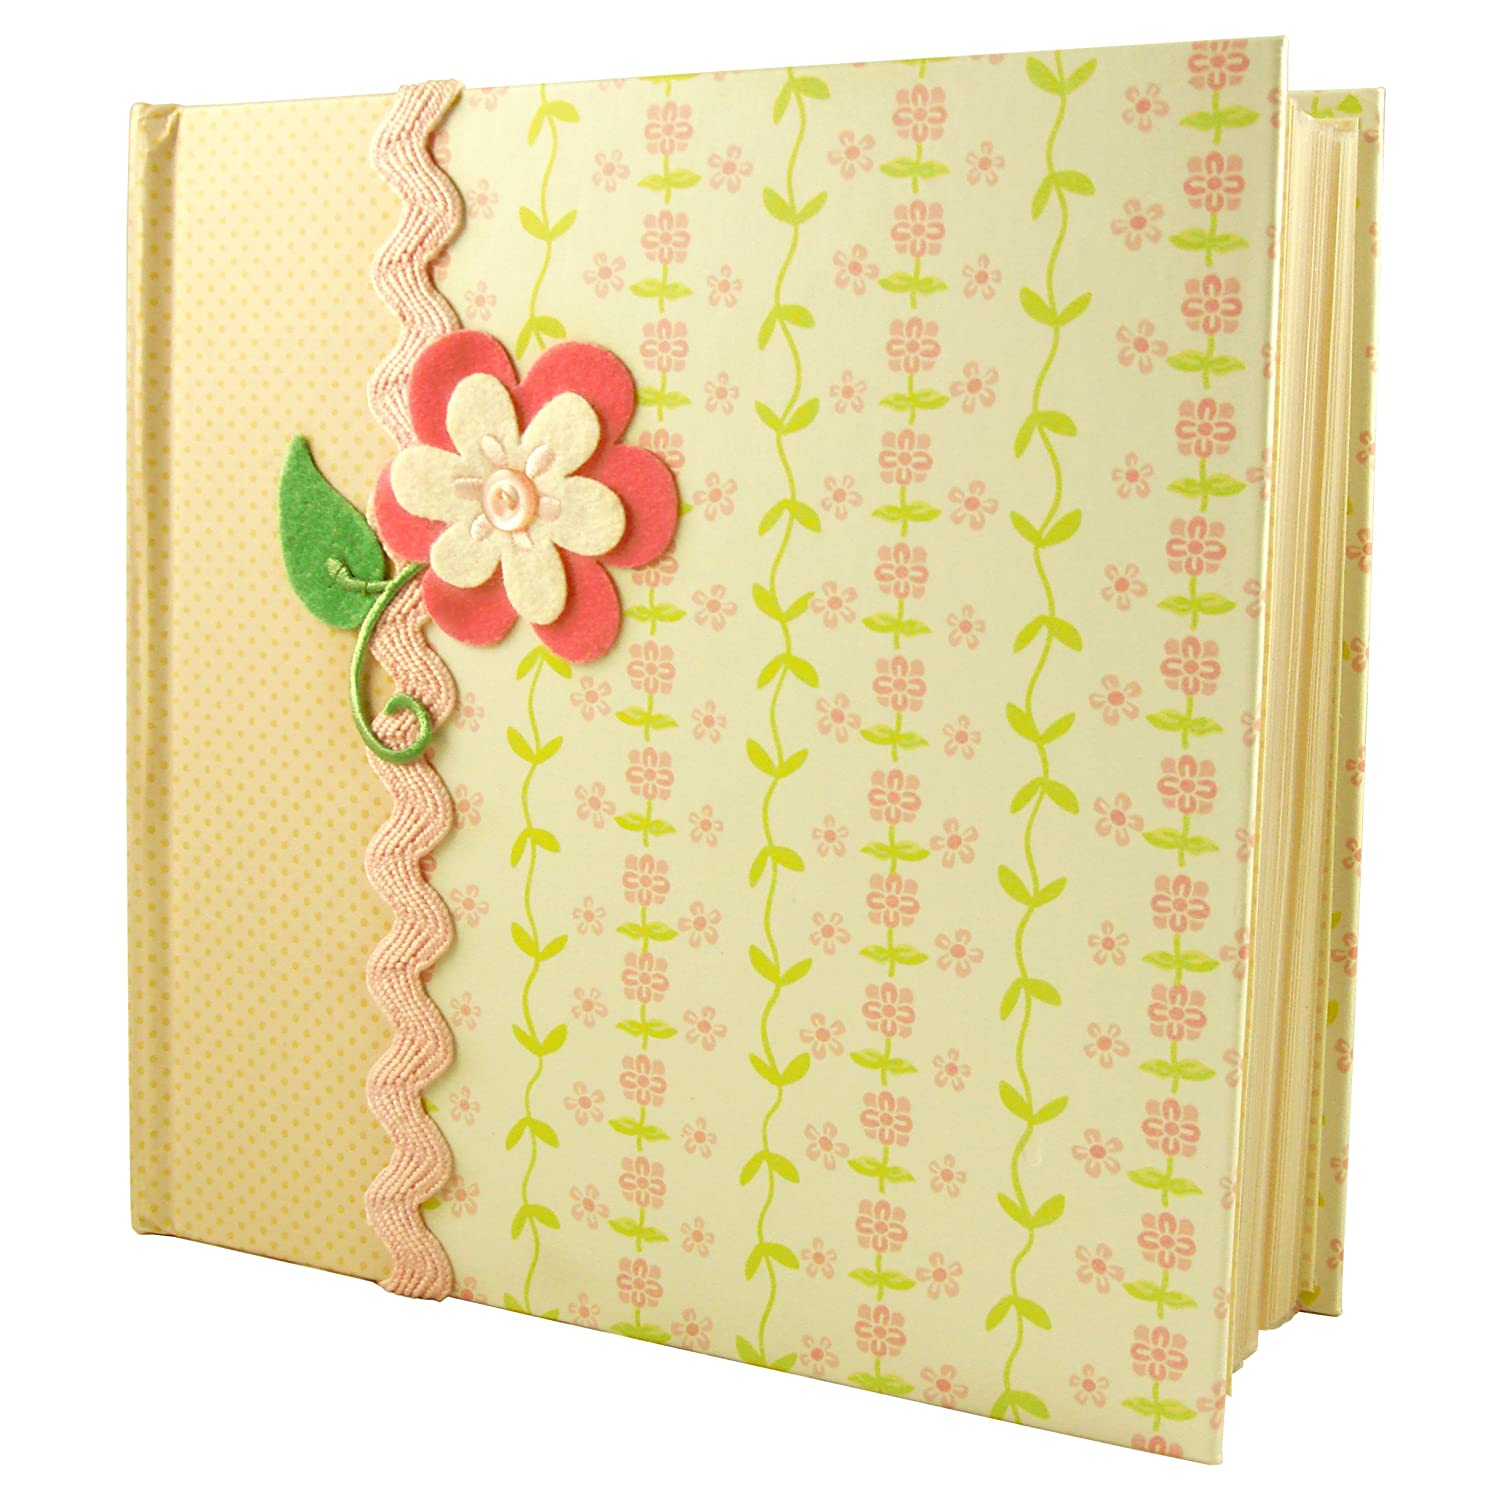 C.R. Gibson Bound Photo Journal Album with CD Storage Pocket, LuLu by Anna Griffin